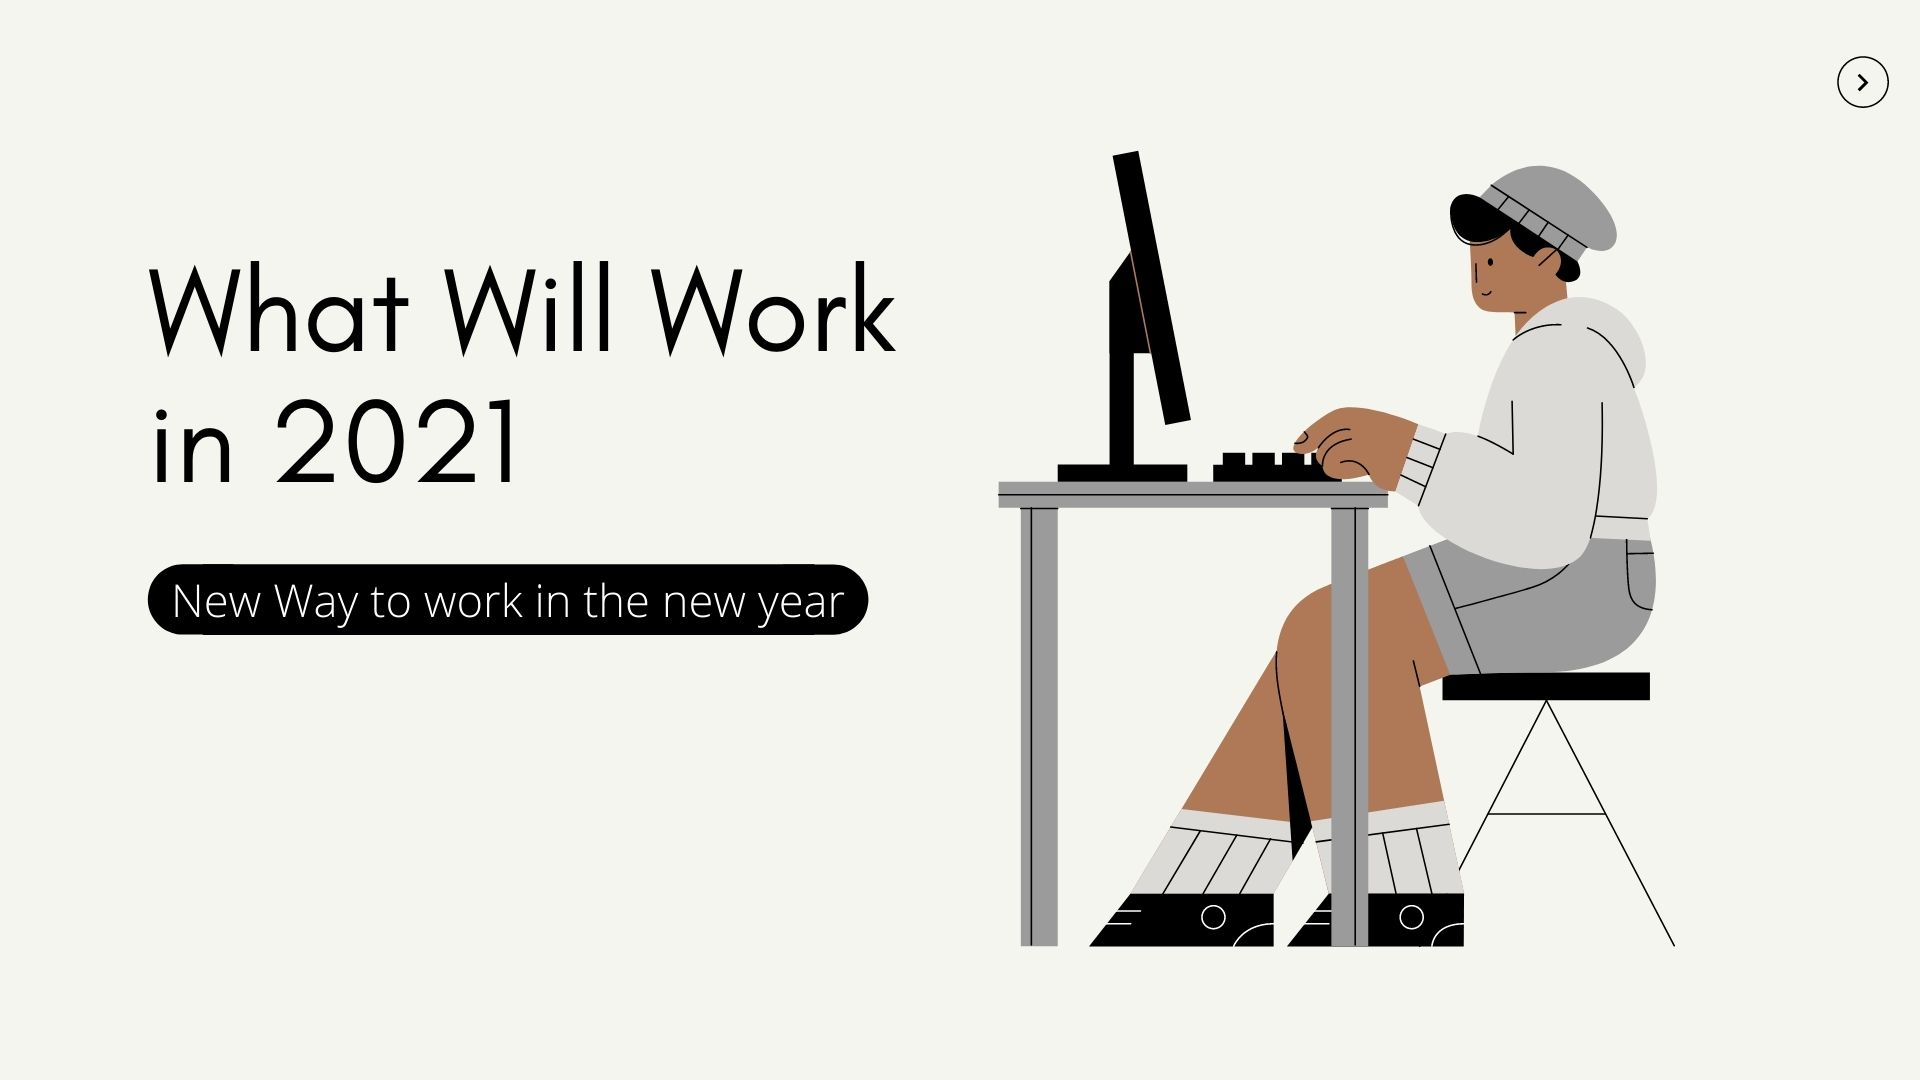 What will work in 2021